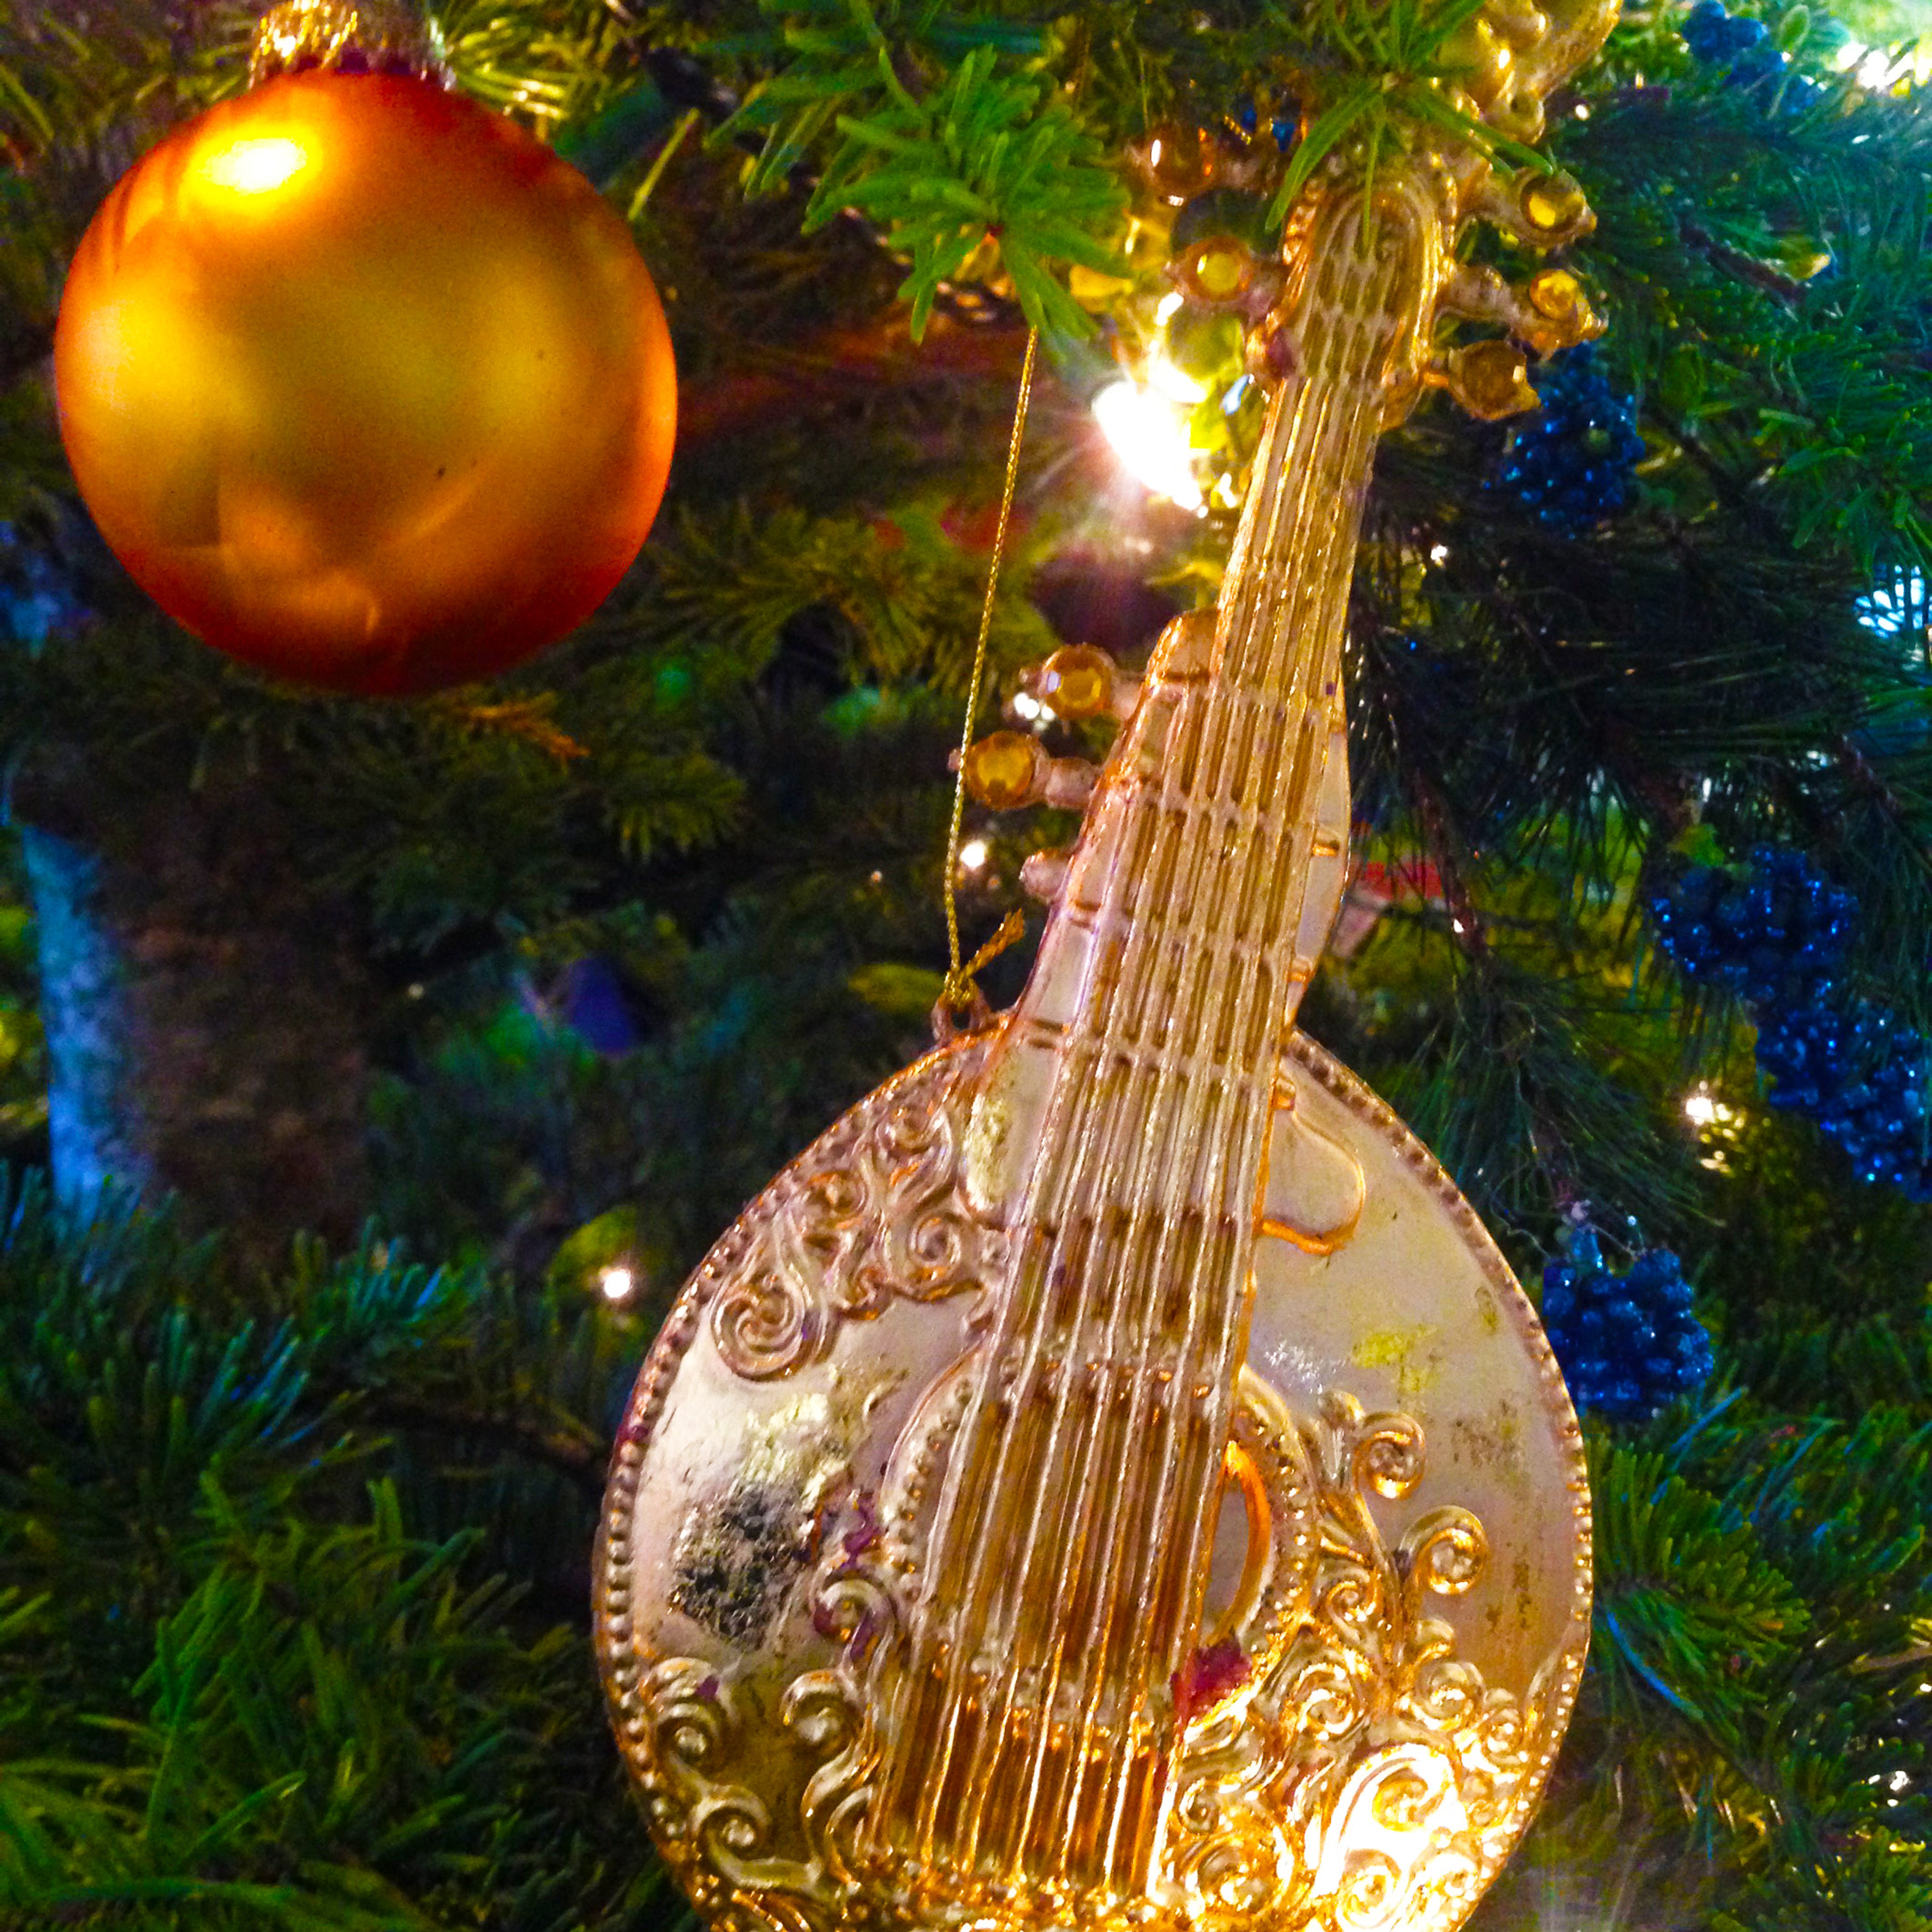 Now bring out the musical insturments one by one...the mandolin.